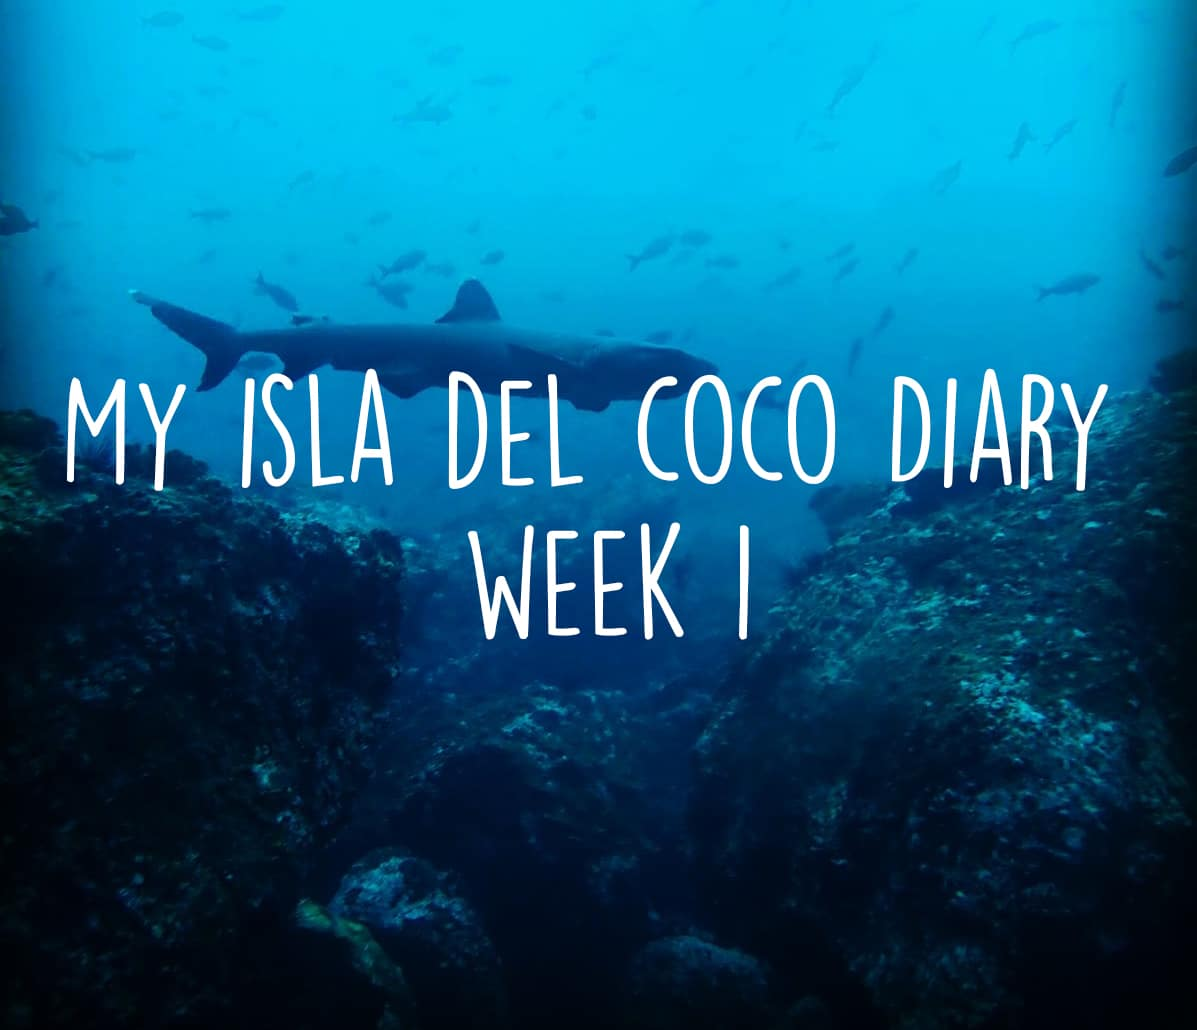 My Isla del Coco diary – What a week!